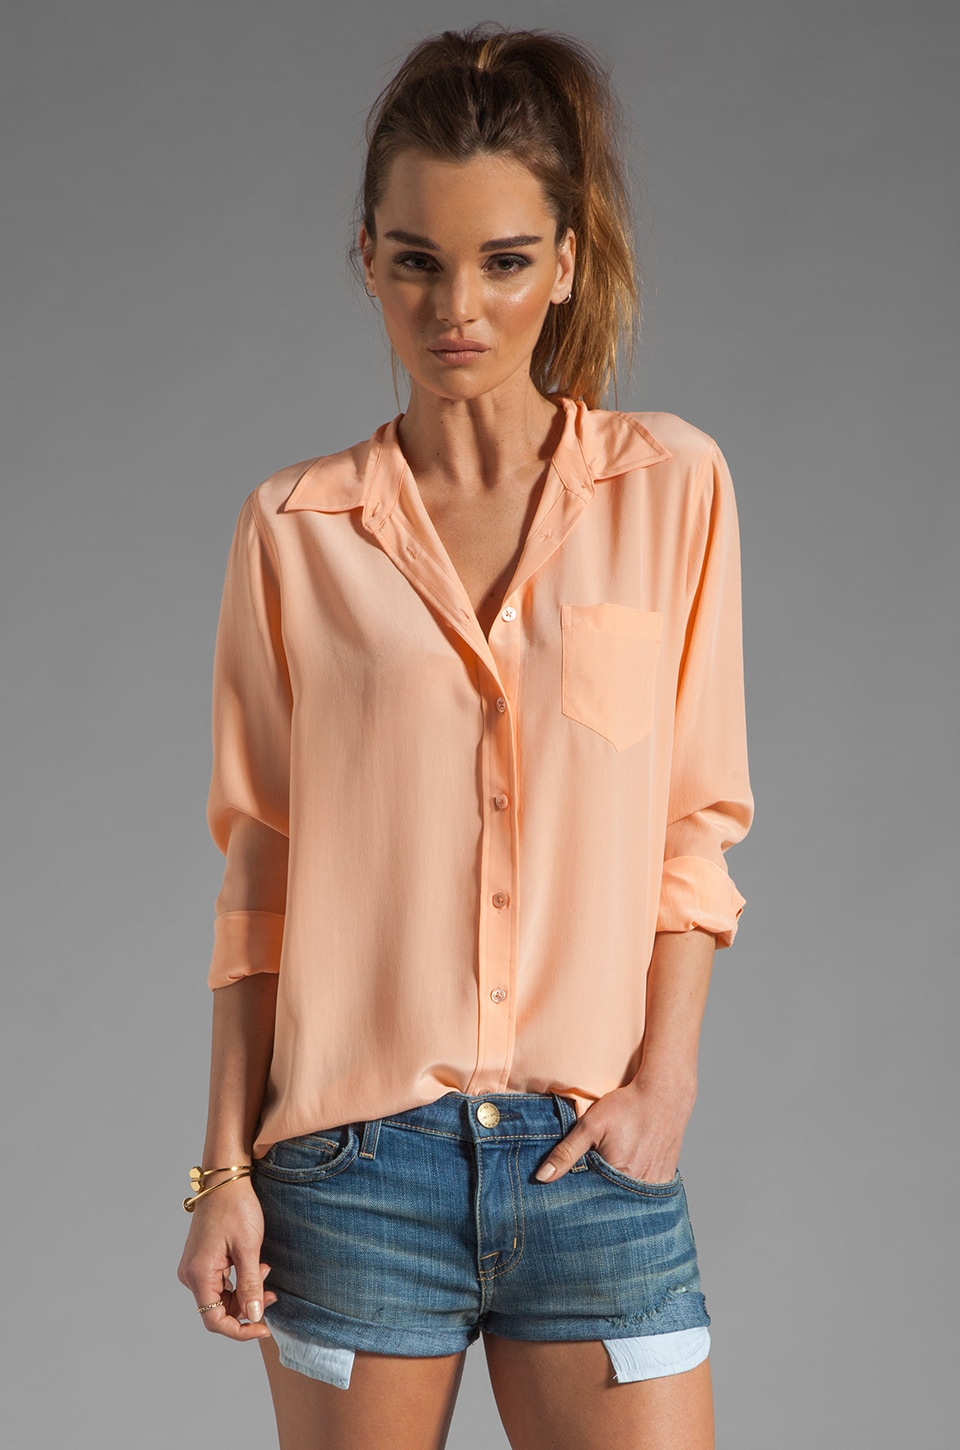 Equipment Brett Vintage Wash Blouse in Peach Nectar